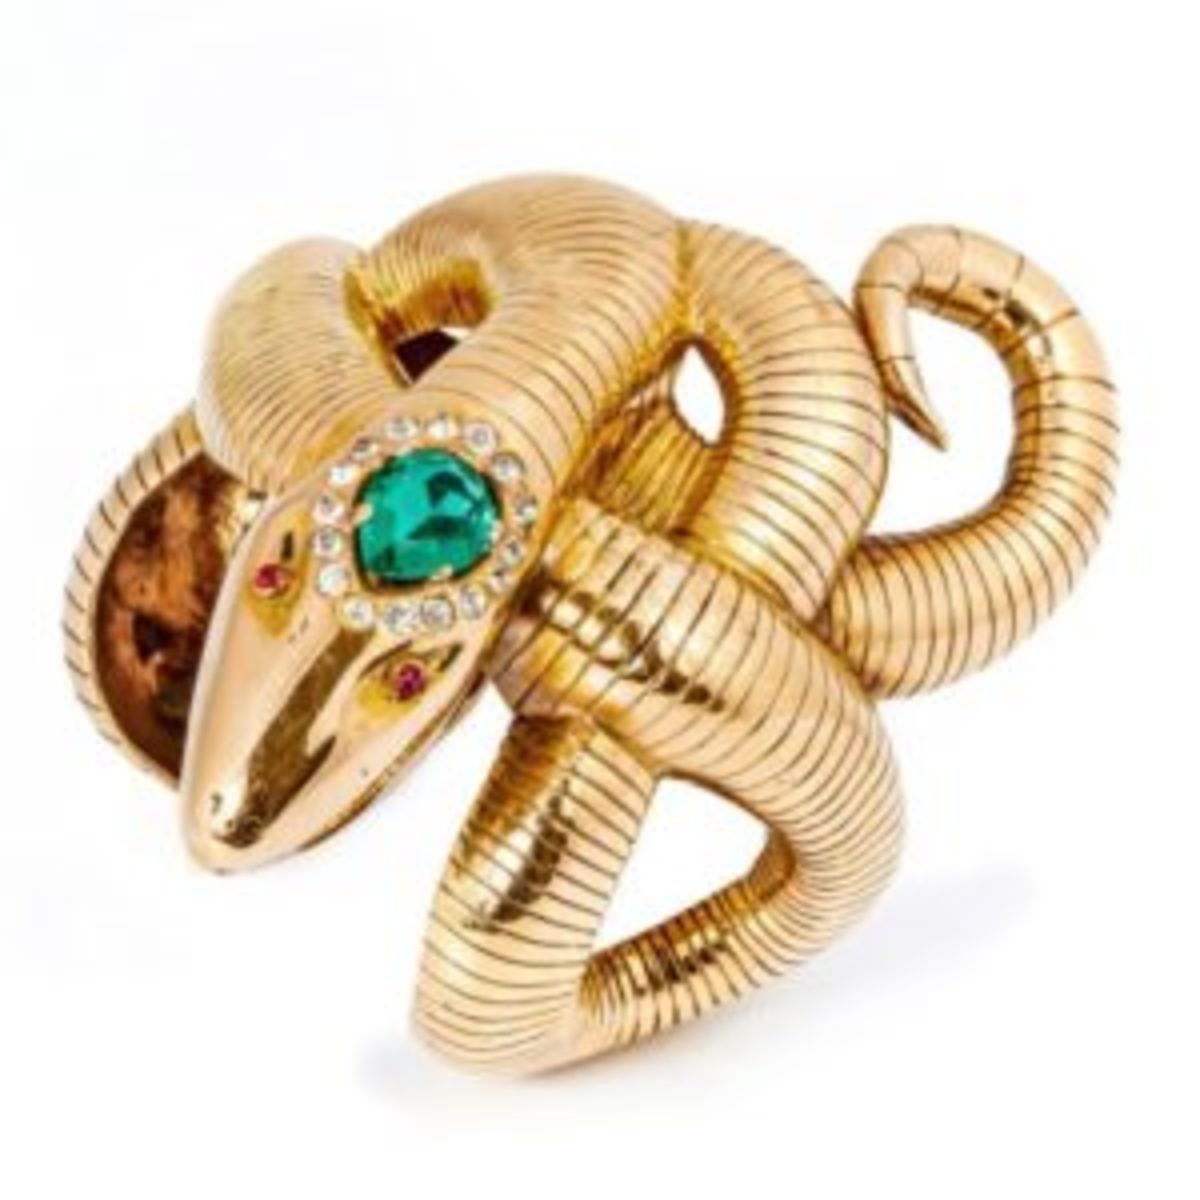 A Rita Hayworth-worn 18k yellow gold cuff bracelet in the form of a coiled snake, with a simulated emerald surrounded by 16 simulated diamonds on the crown and two simulated rubies for eyes, sold for $25,600, thousands more than its estimate of $10,000-$15,000. You can see the cuff on Rita's wrist in a scene from Down to Earth (Columbia, 1947) shown below.